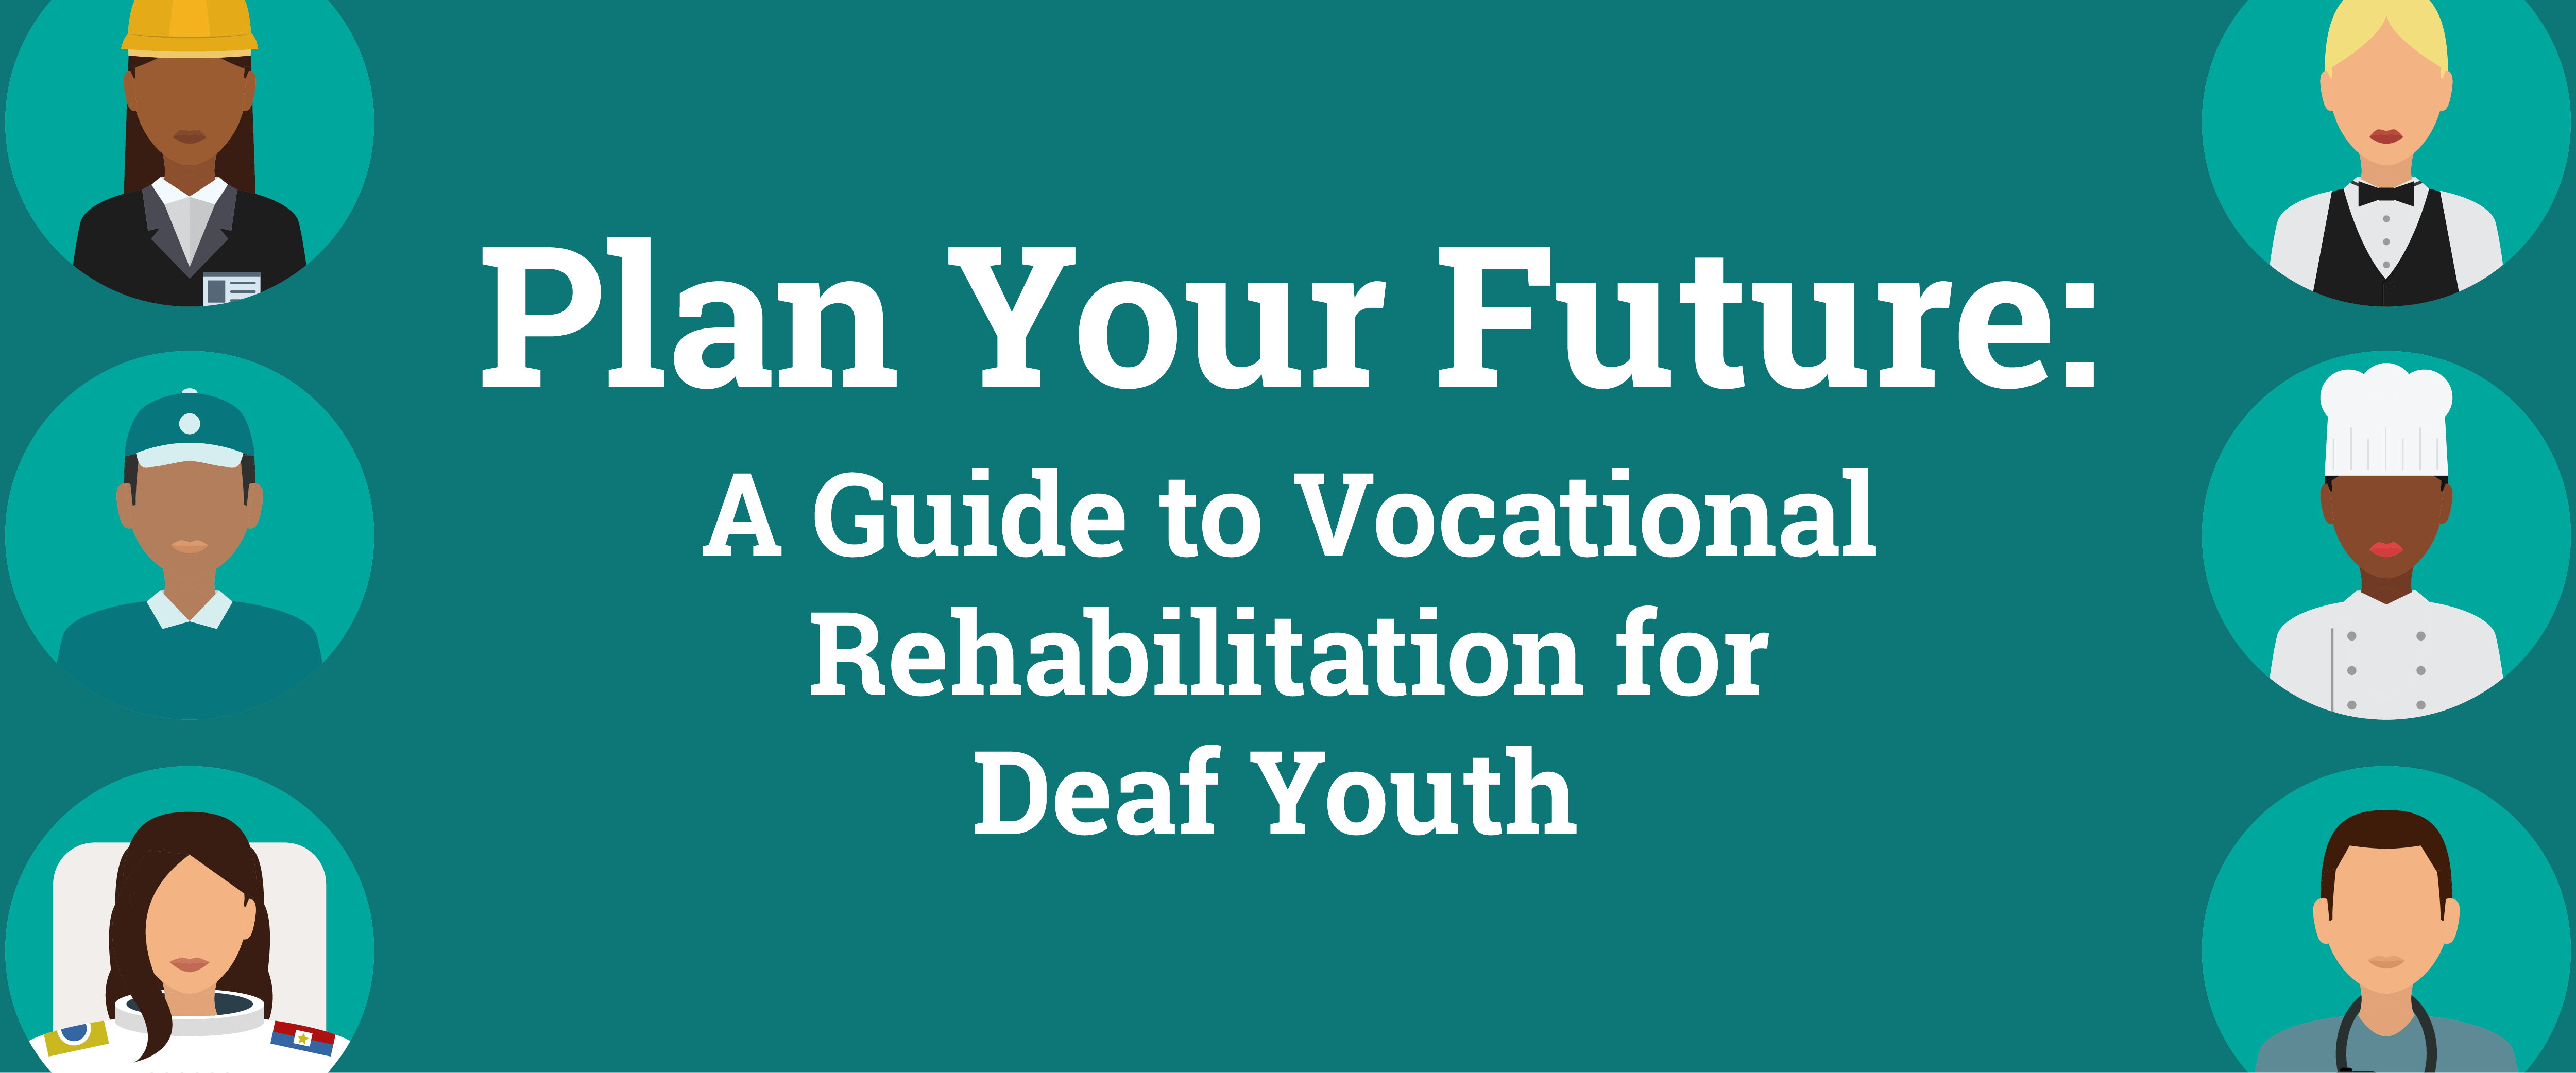 Text: plan your future a guide to vocational rehabilitation for deaf youth